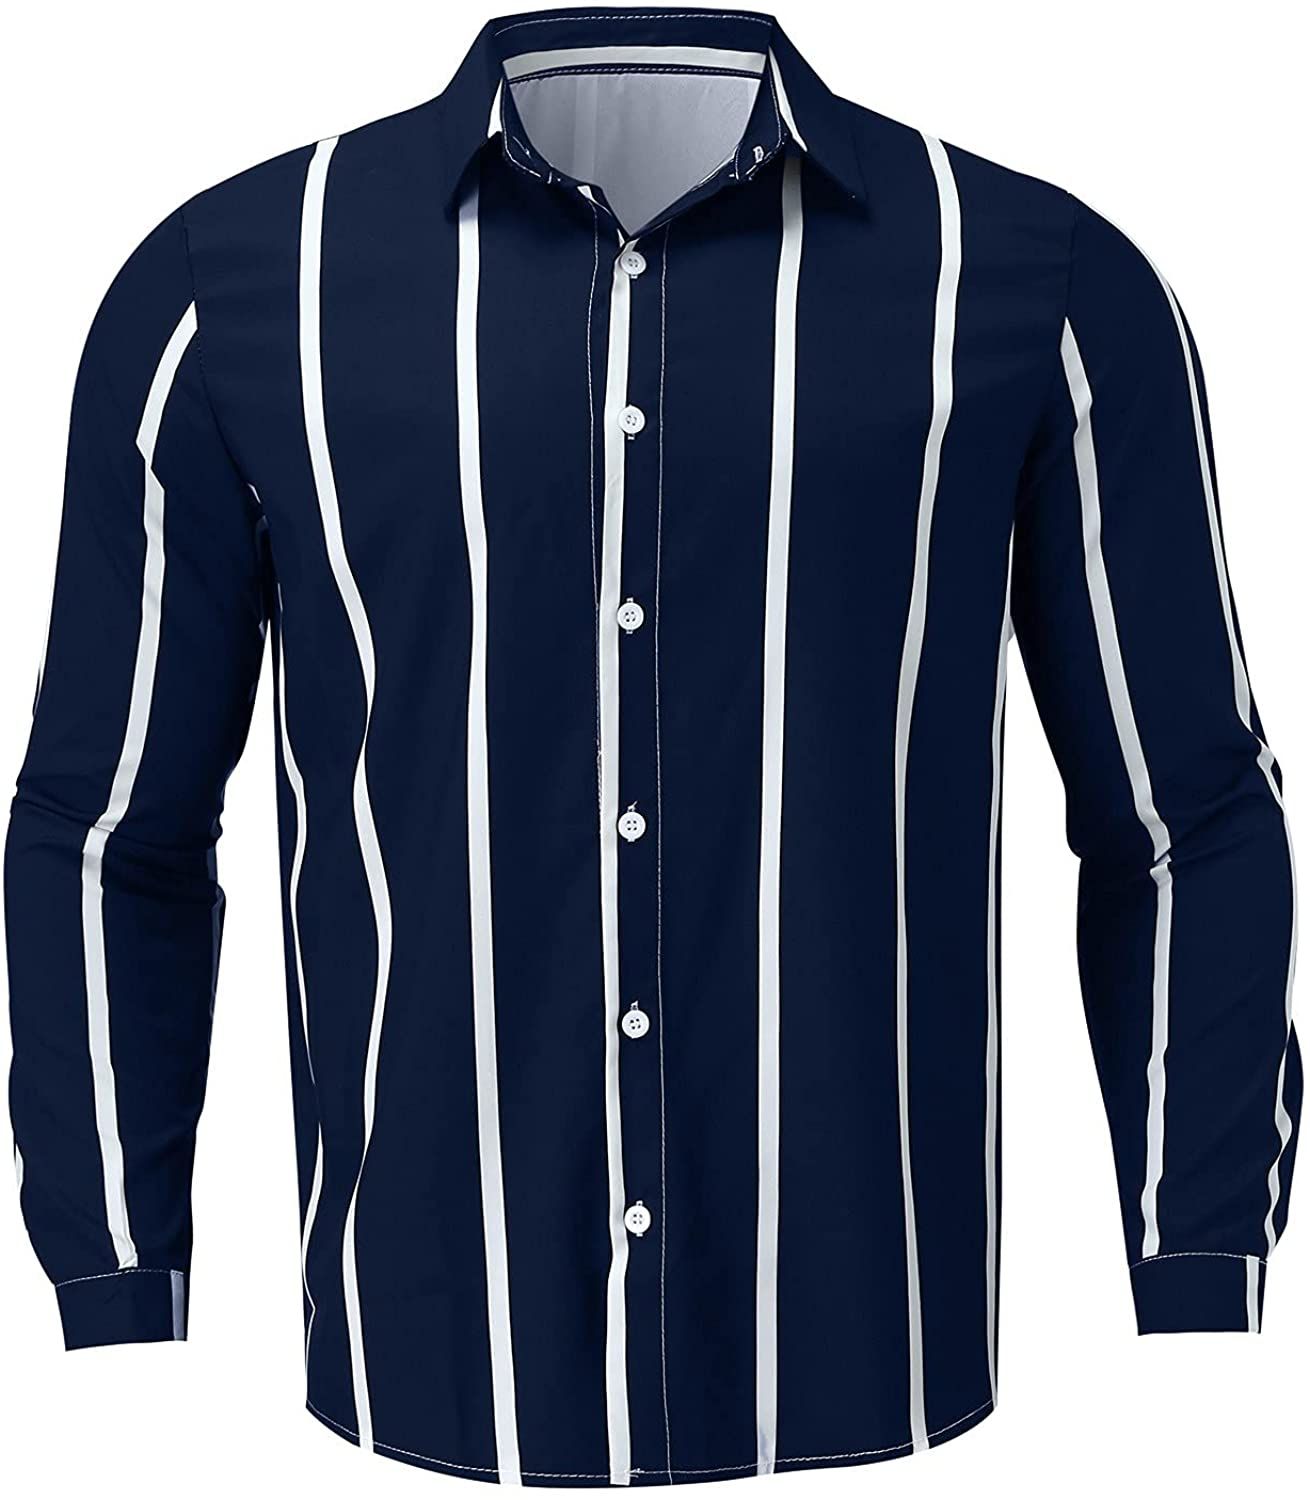 AMTF 2021 Mens Solid Color Long Sleeve Double Pockets Turn-Down Collar Button Button Blouse Fall Corduroy Shirt Jacket